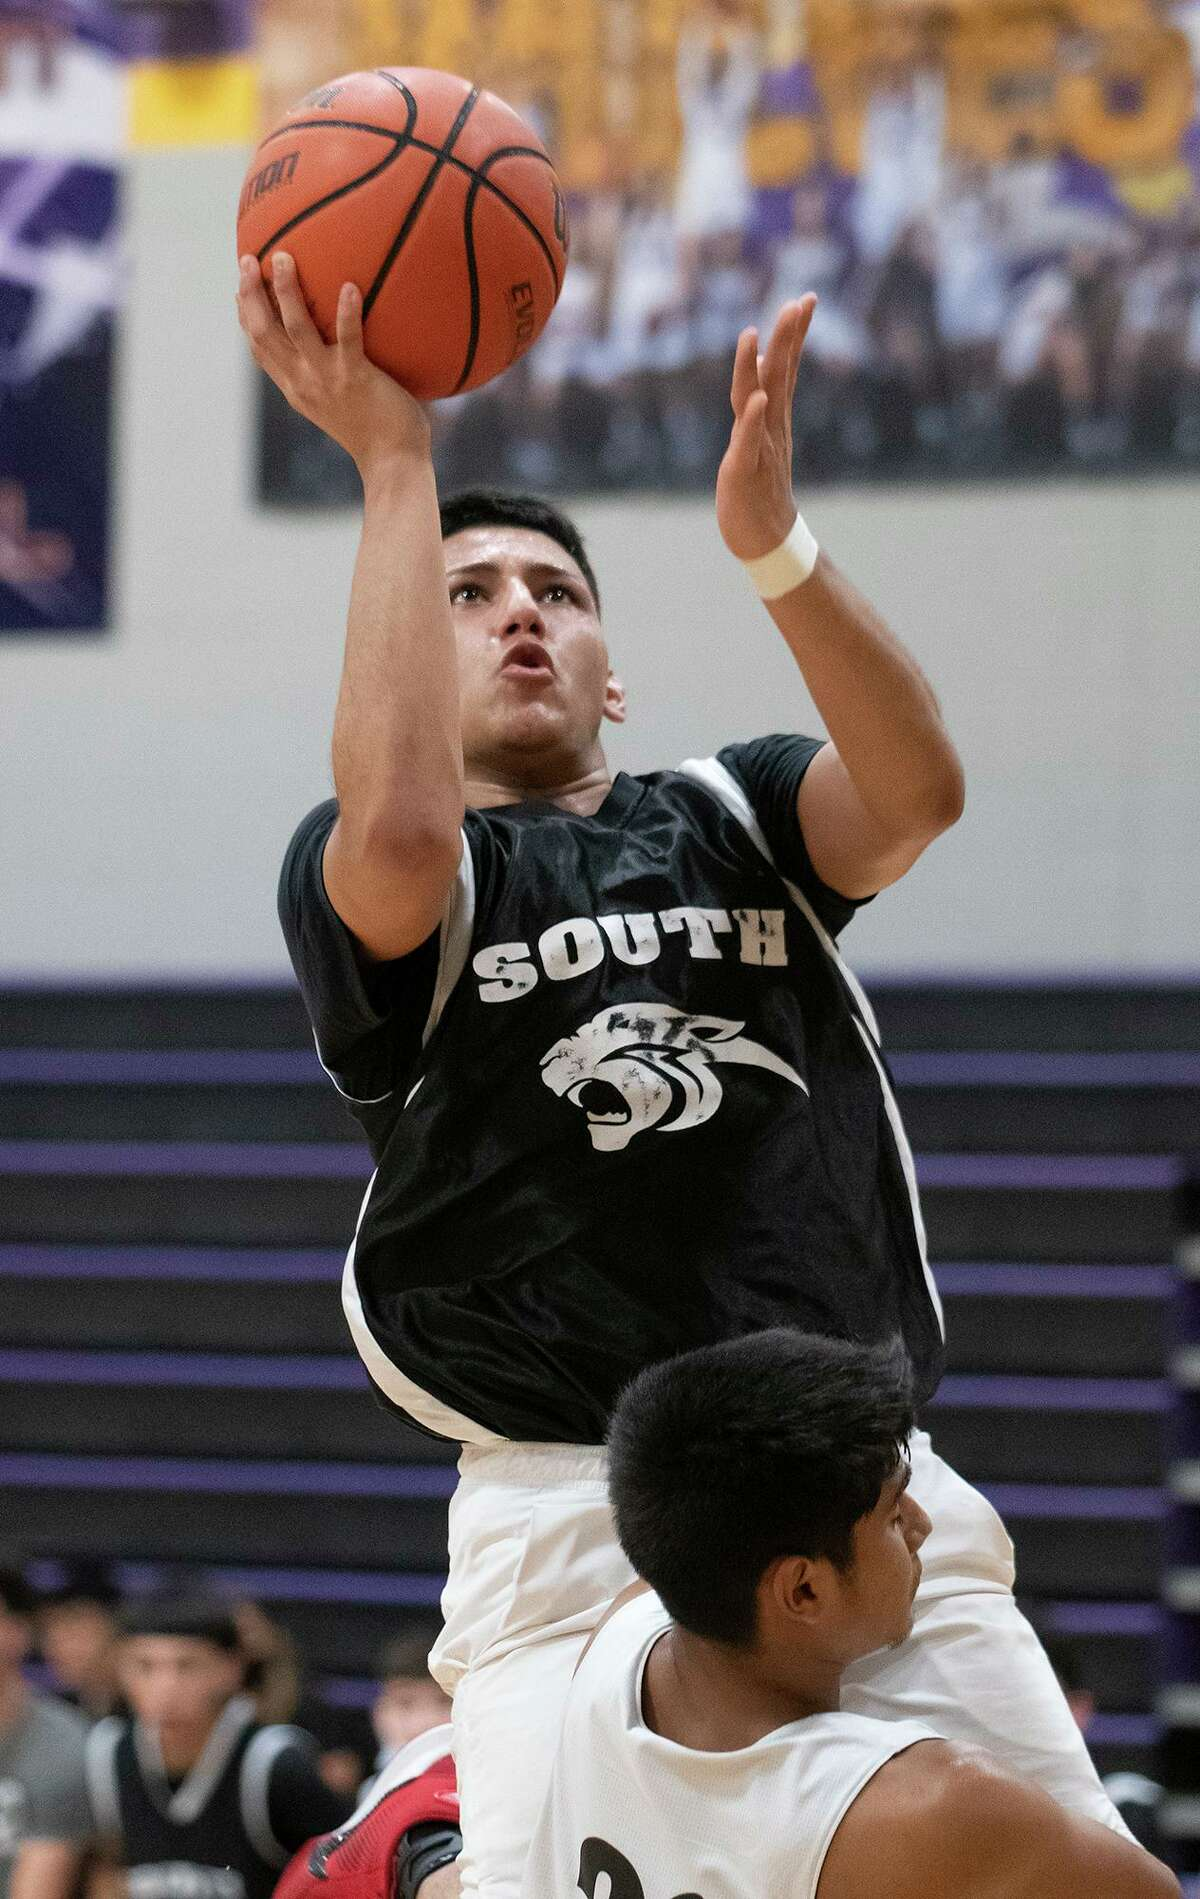 United South's Jacob Trevino will be a senior this coming season.